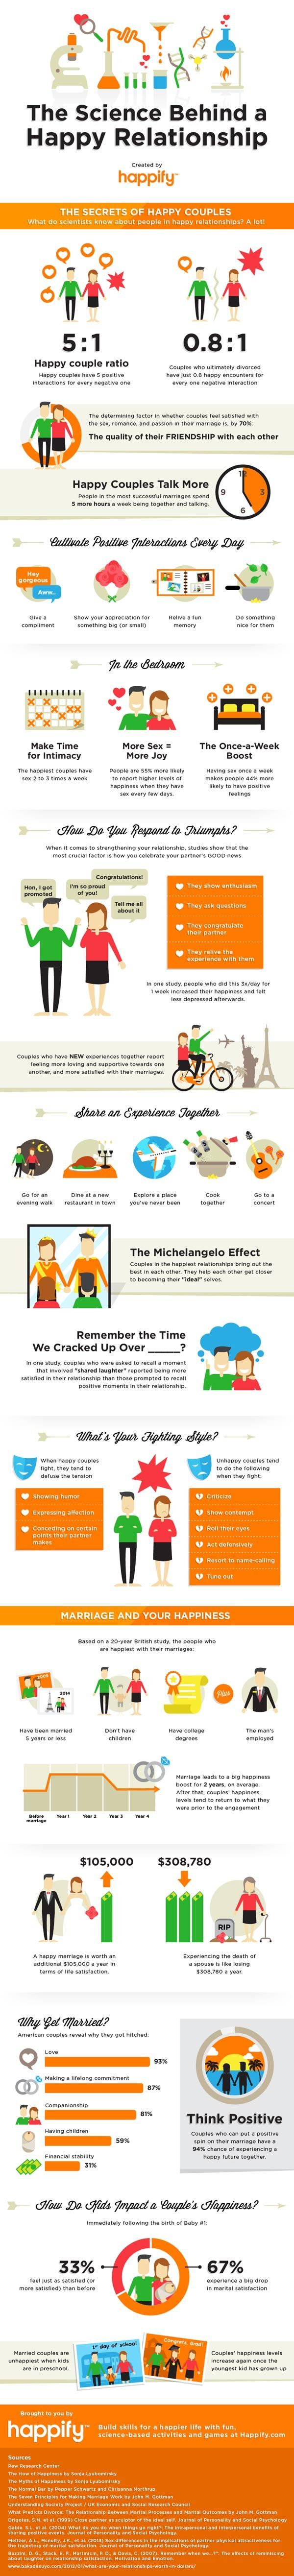 This wonderful infographic shares the ingredients of a happy relationship that you can use to create the magic potion to enjoy your relationship with your partner. :)